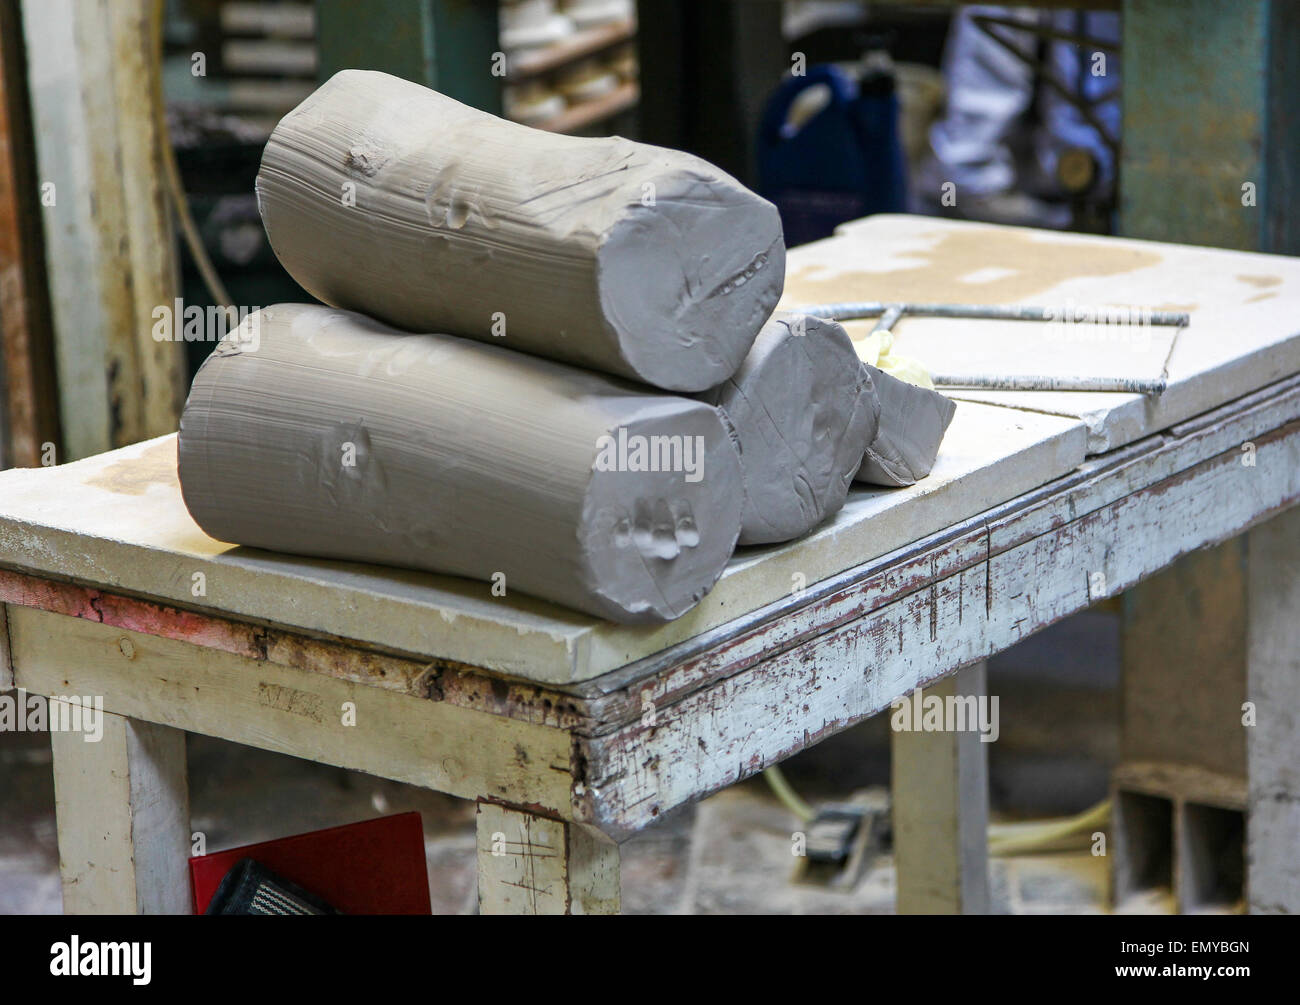 Rolls of clay at the Burleigh Middleport pottery factory Stoke-on-Trent North Staffordshire England UK - Stock Image